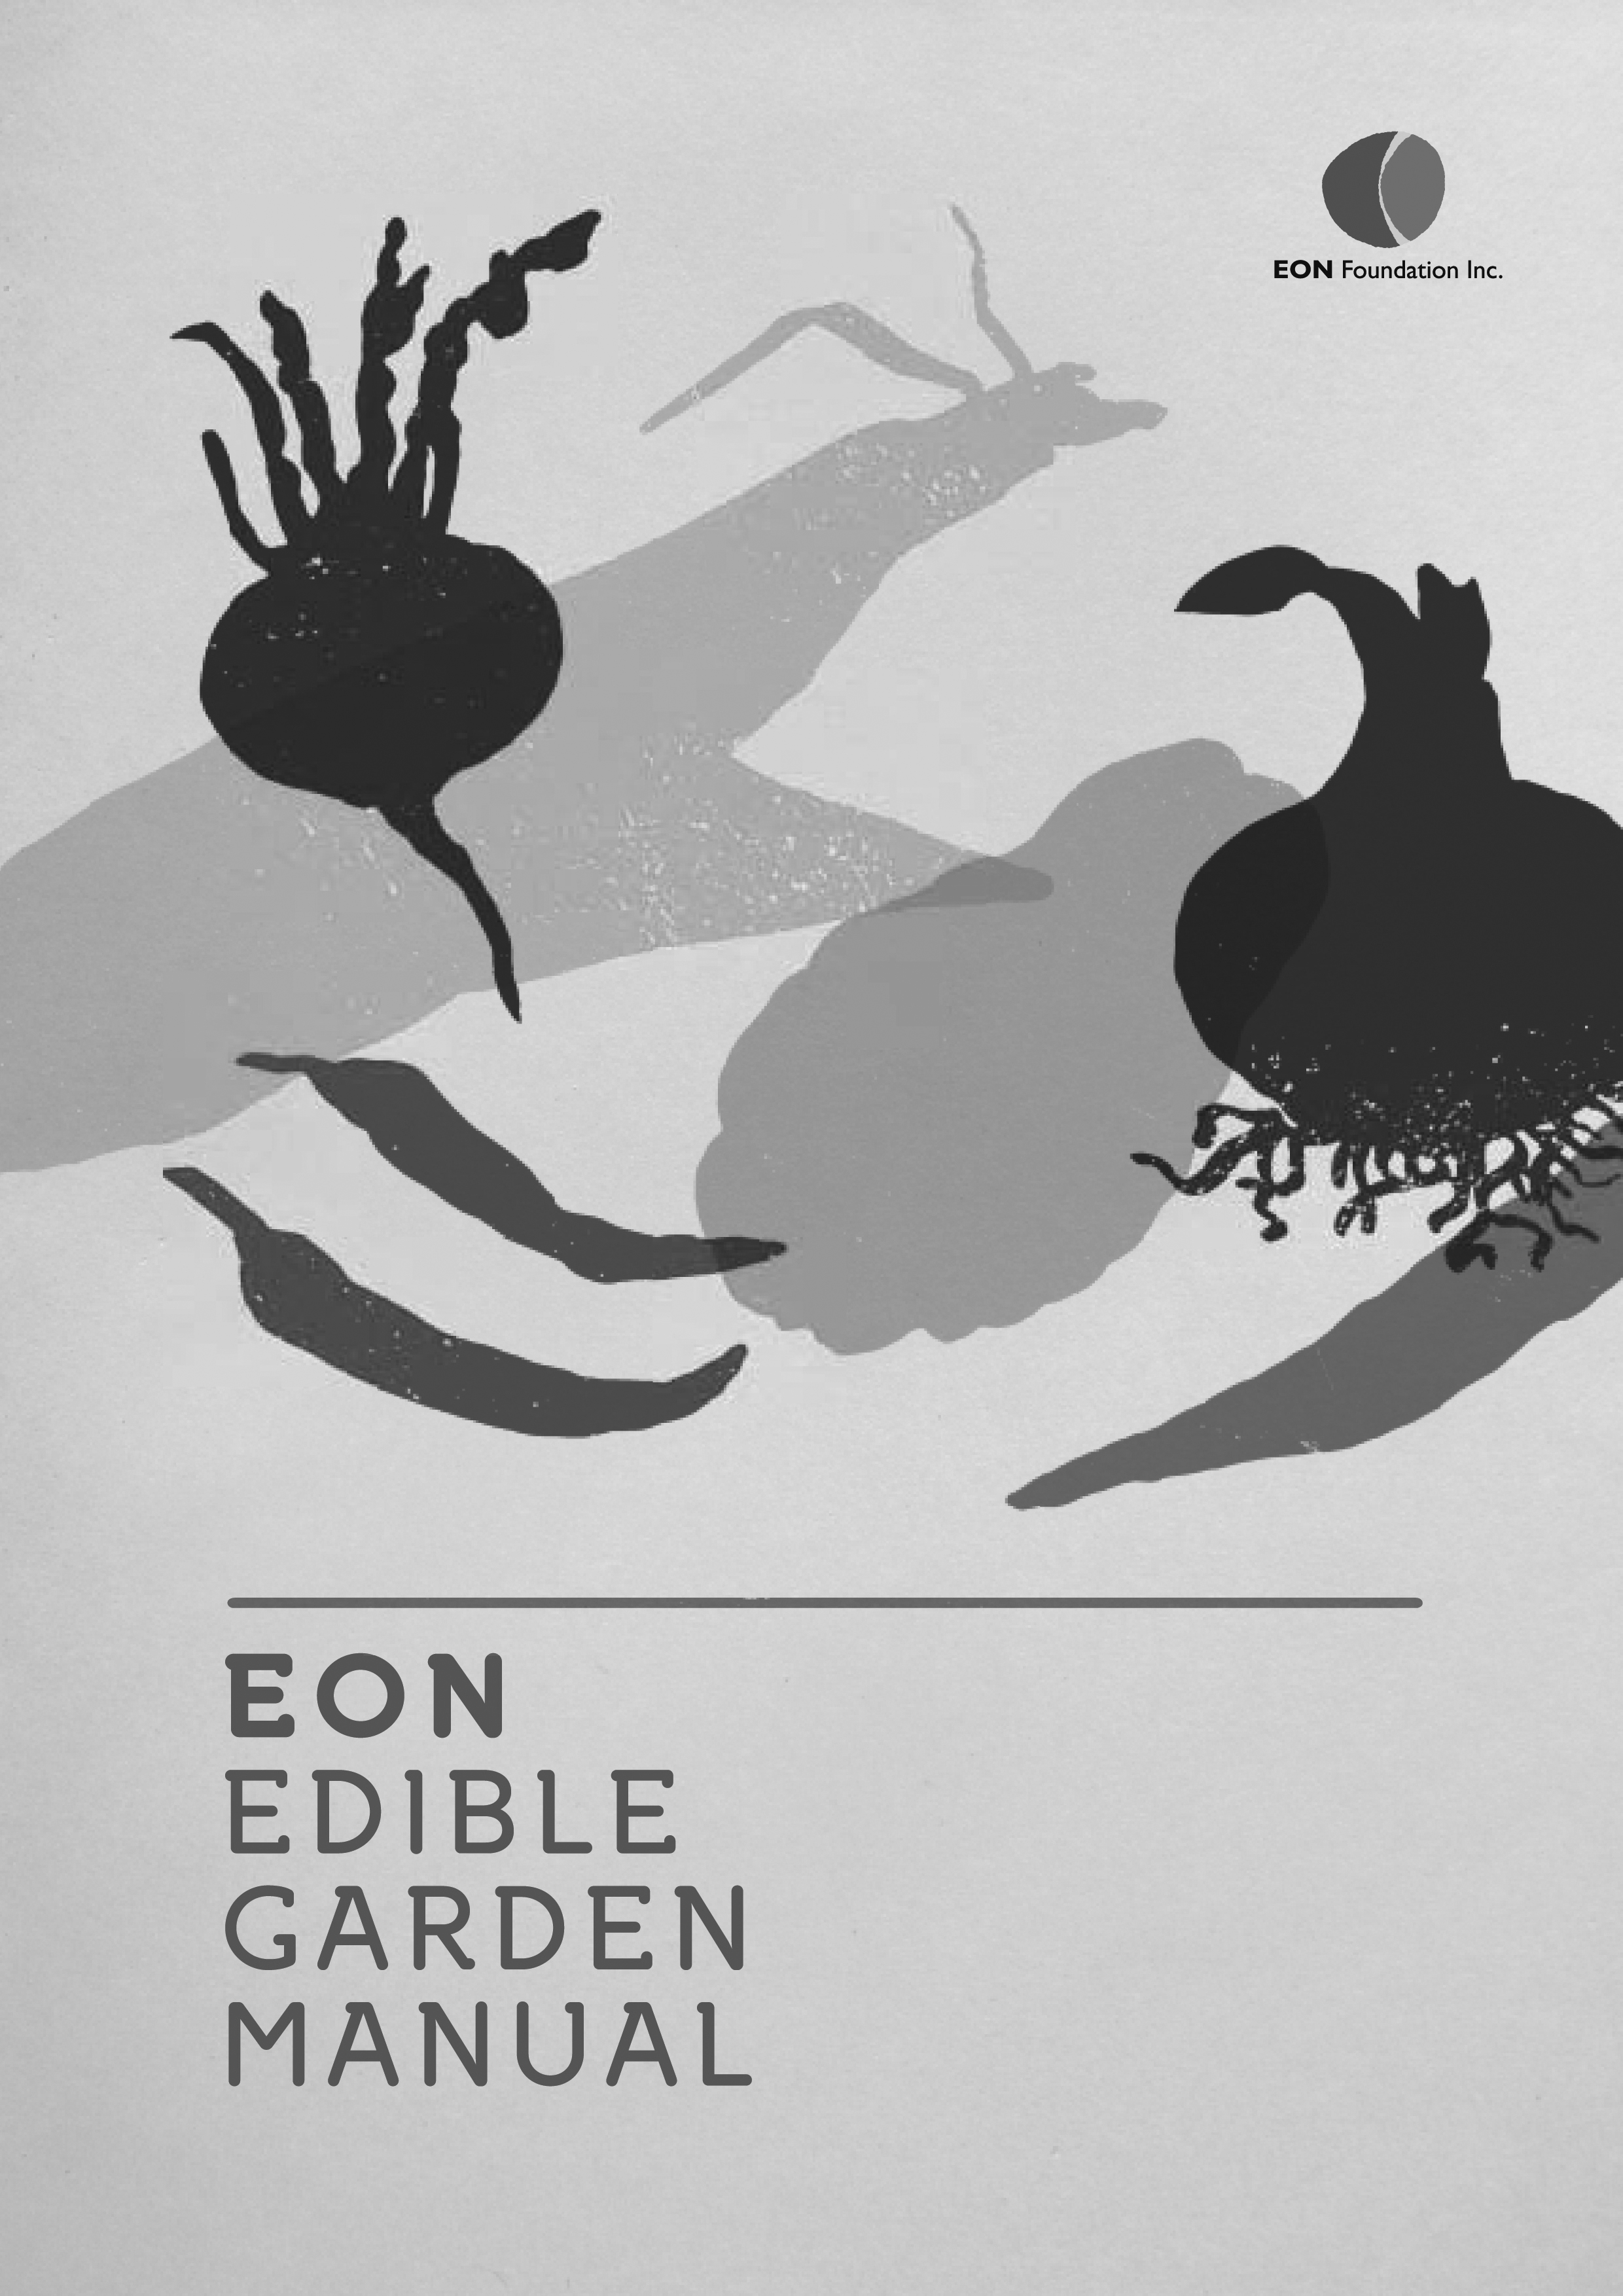 EON edible garden manual